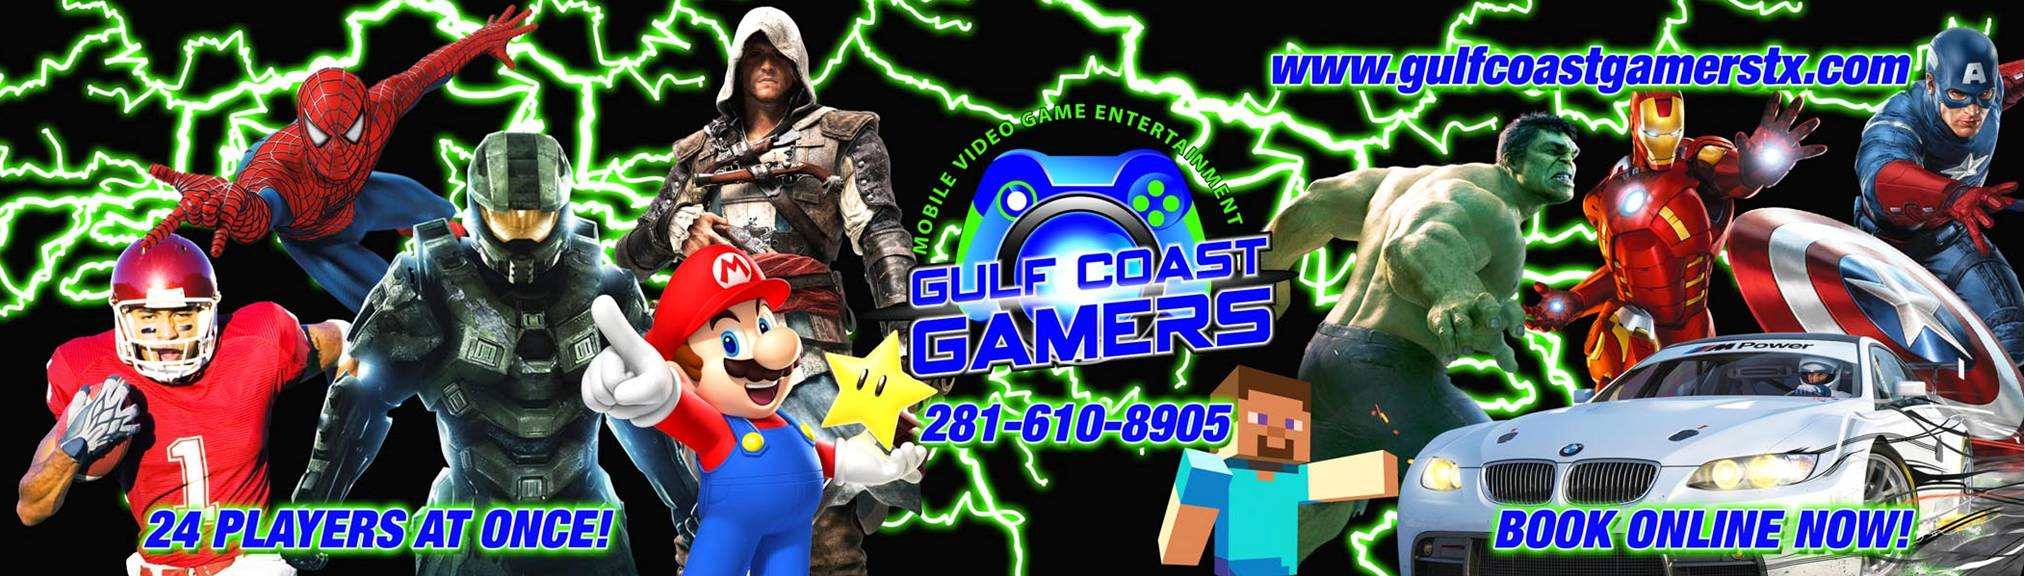 gulf-coast-gamers-houston-pasadena-sugar-land-video-game-truck-header